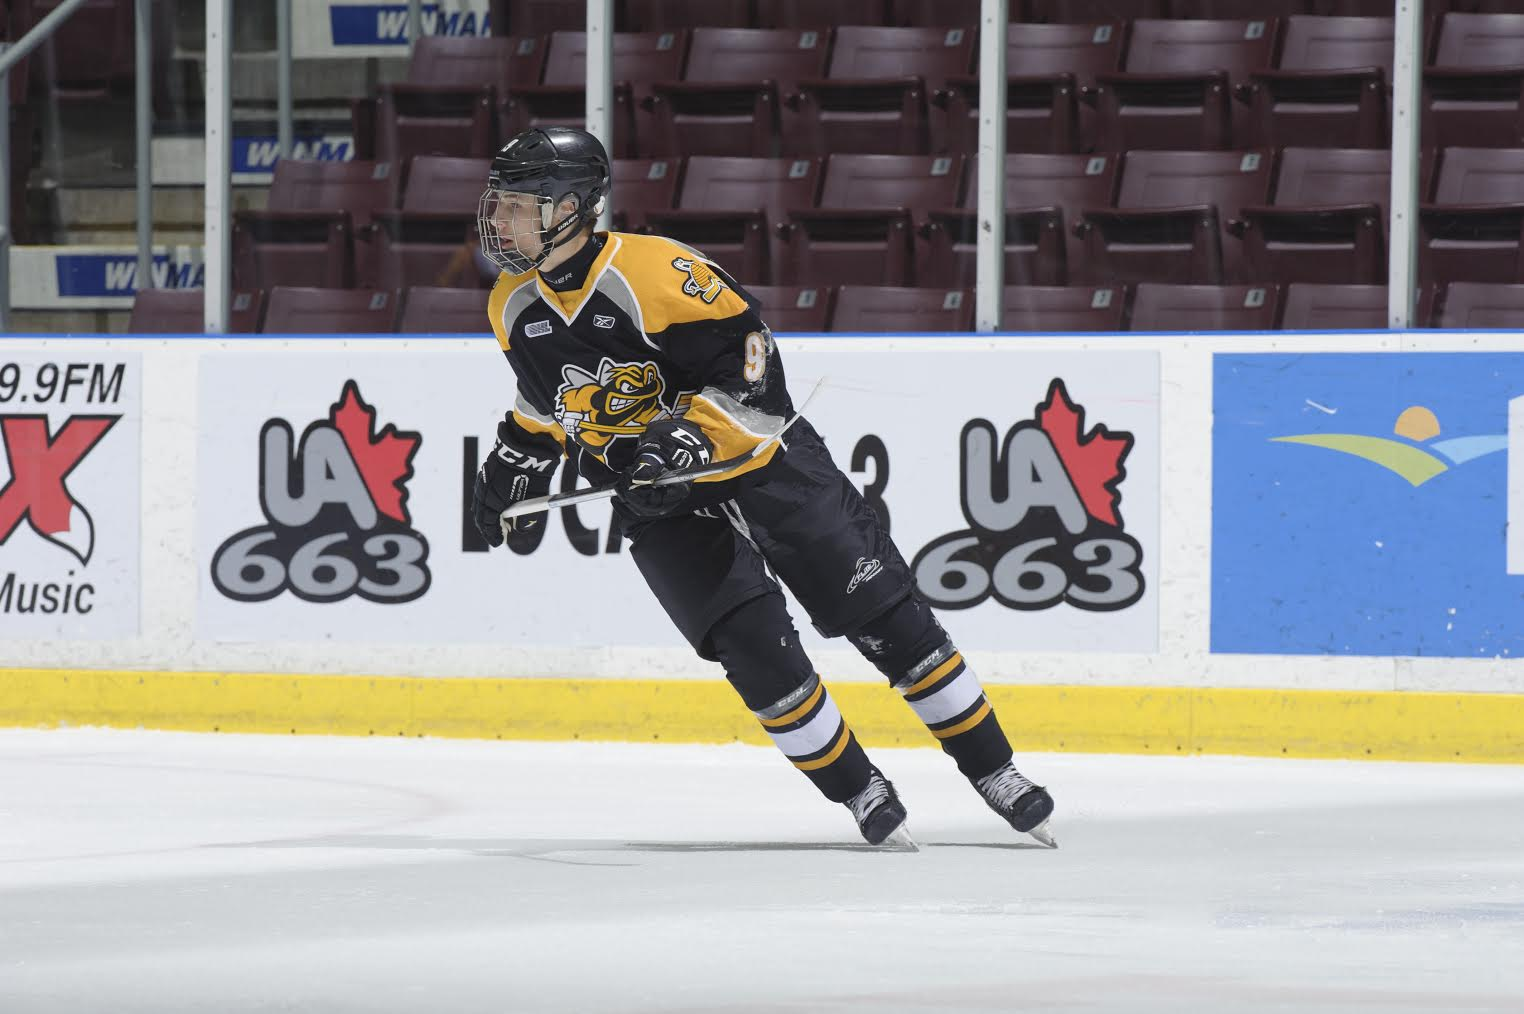 Trio Of Sting At National Under-17 Development Camp